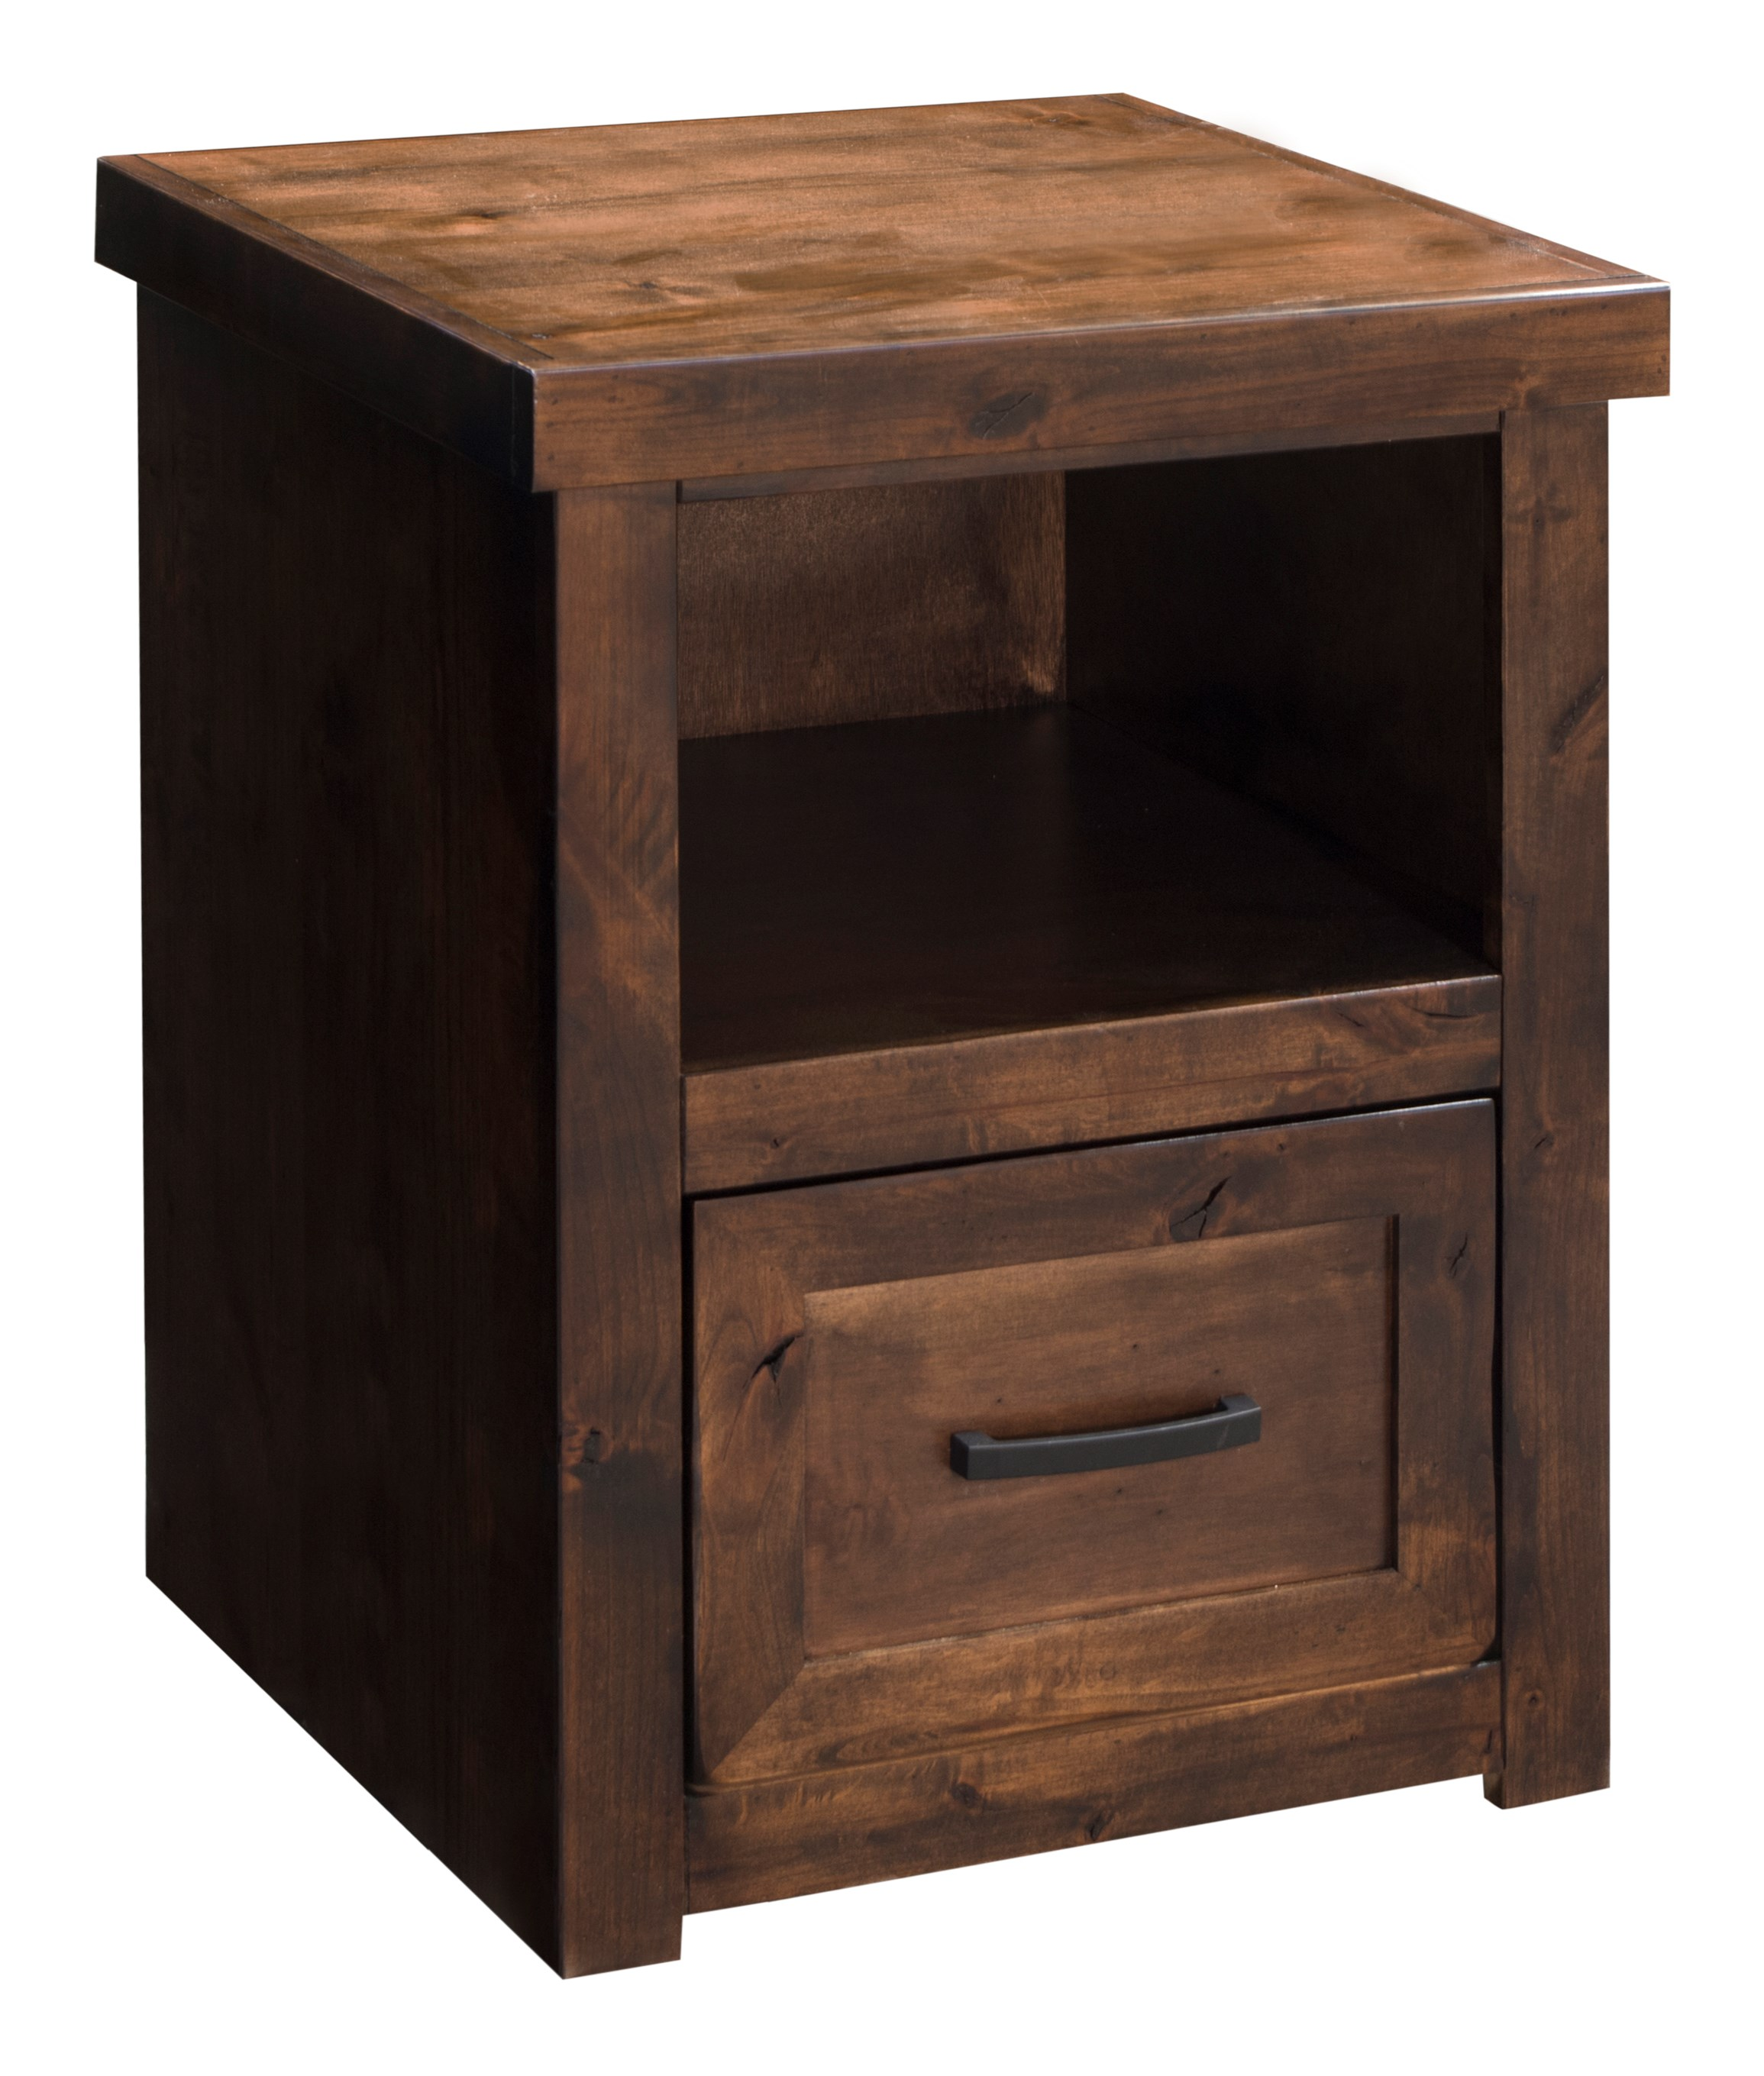 Legends Furniture Sausalito One Drawer File Cabinet In A Whiskey Finish